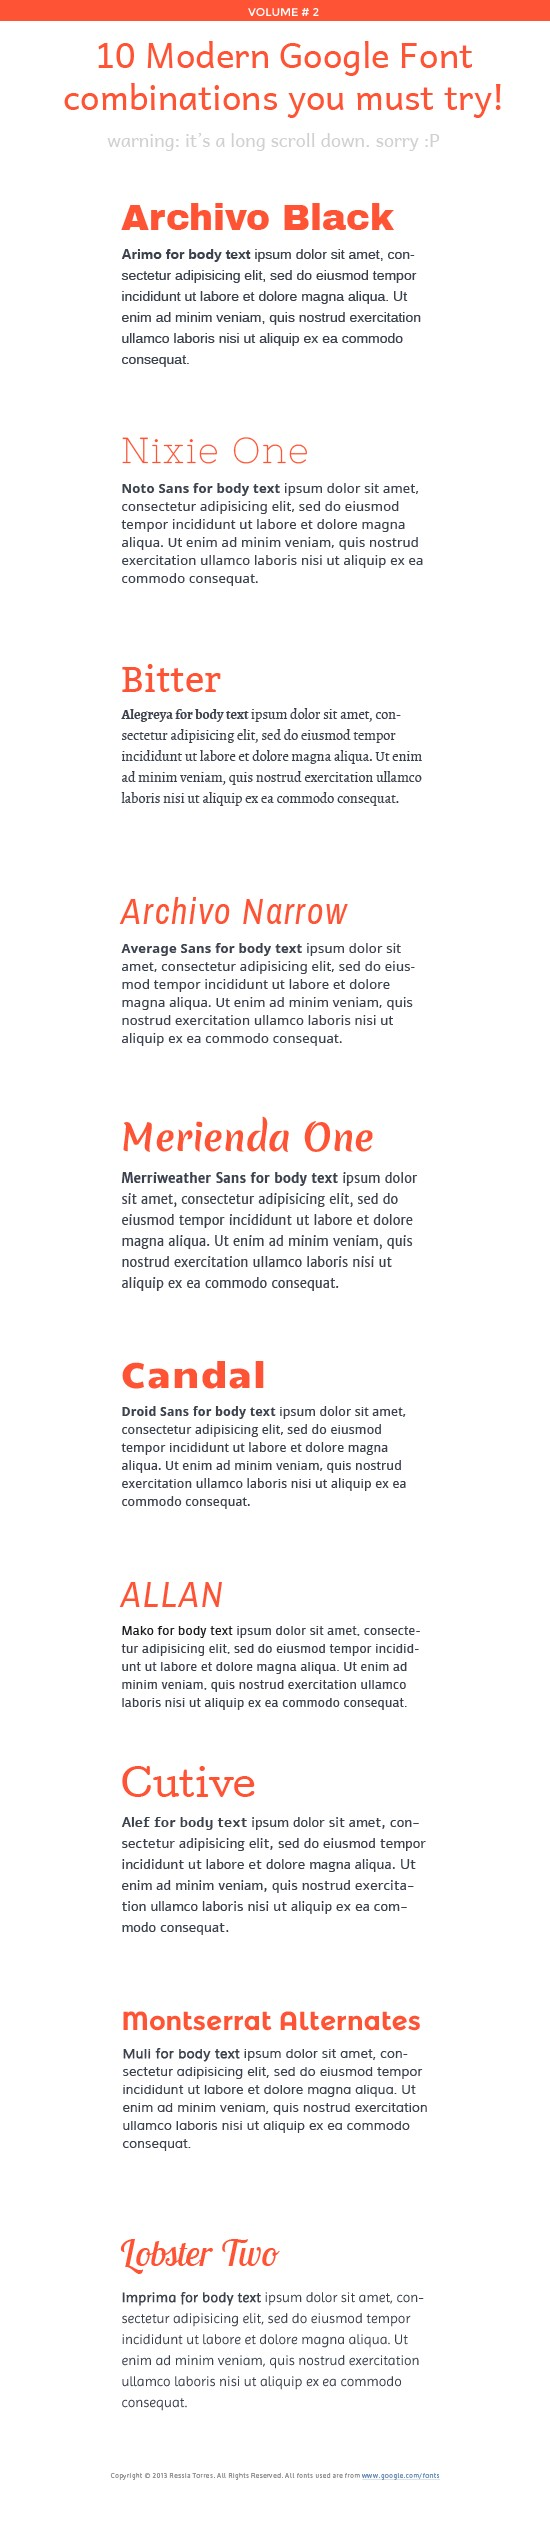 10 great modern google font combinations  typography  googlefonts  fontcombination  webfont